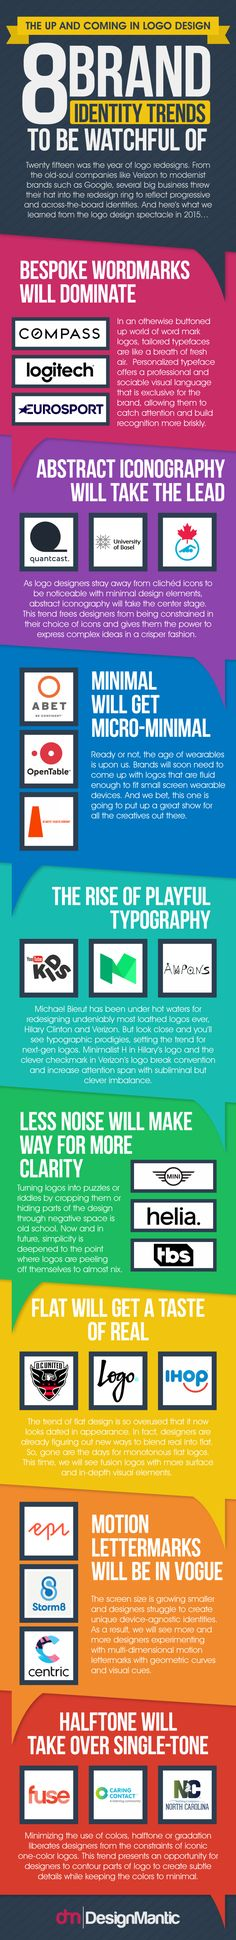 8 Brand Identity Trends to be Watchful of Infographic